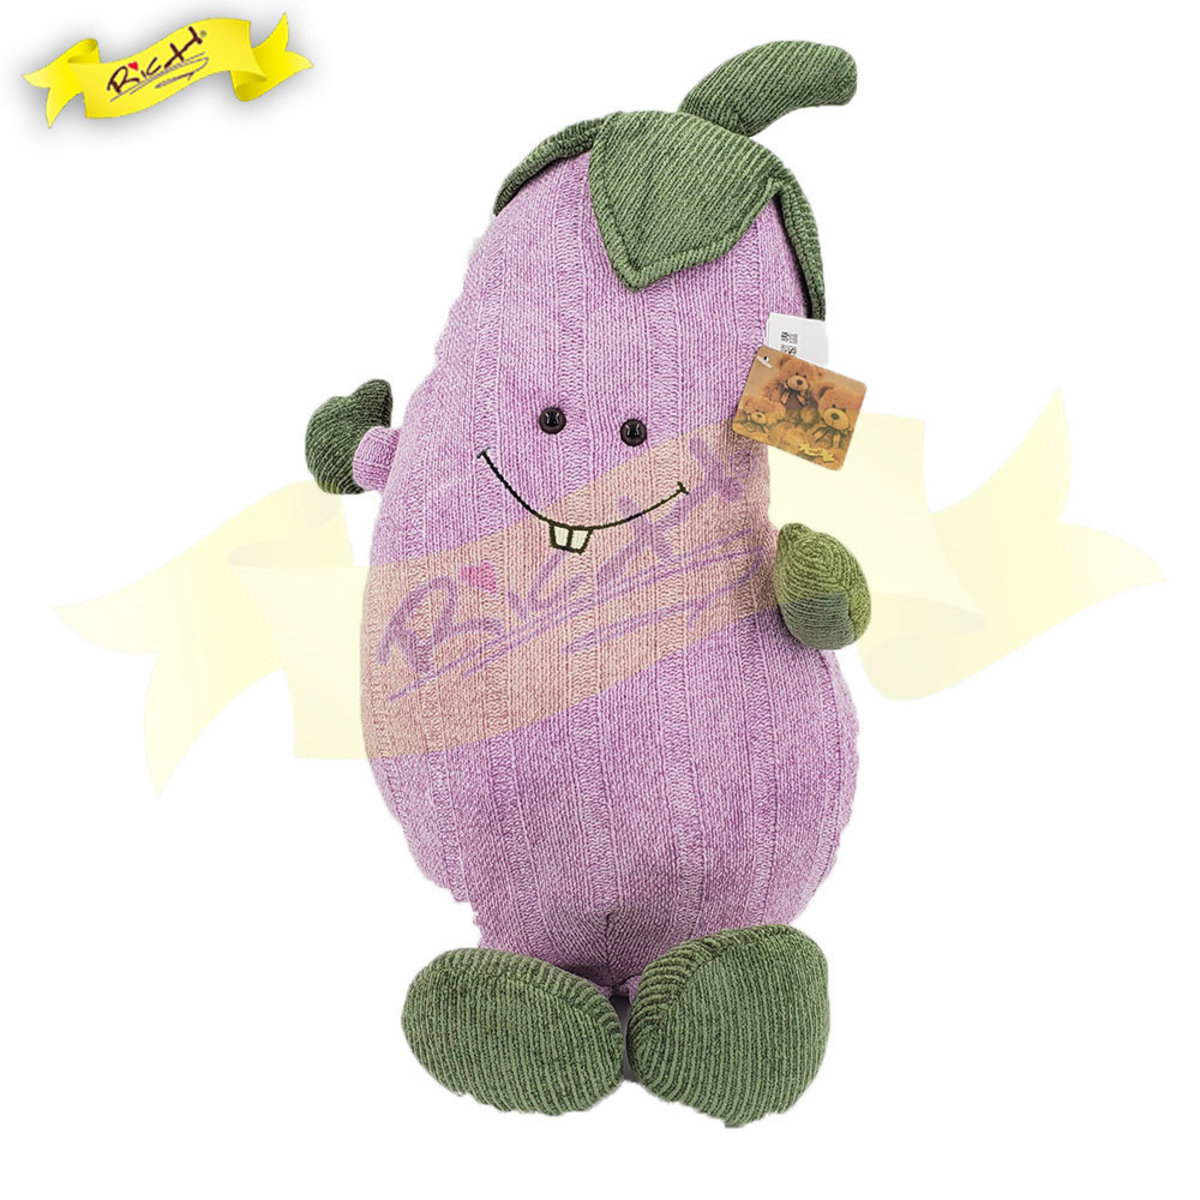 Chenille Knitted Egg Plant Pillow Cushion (62cm)